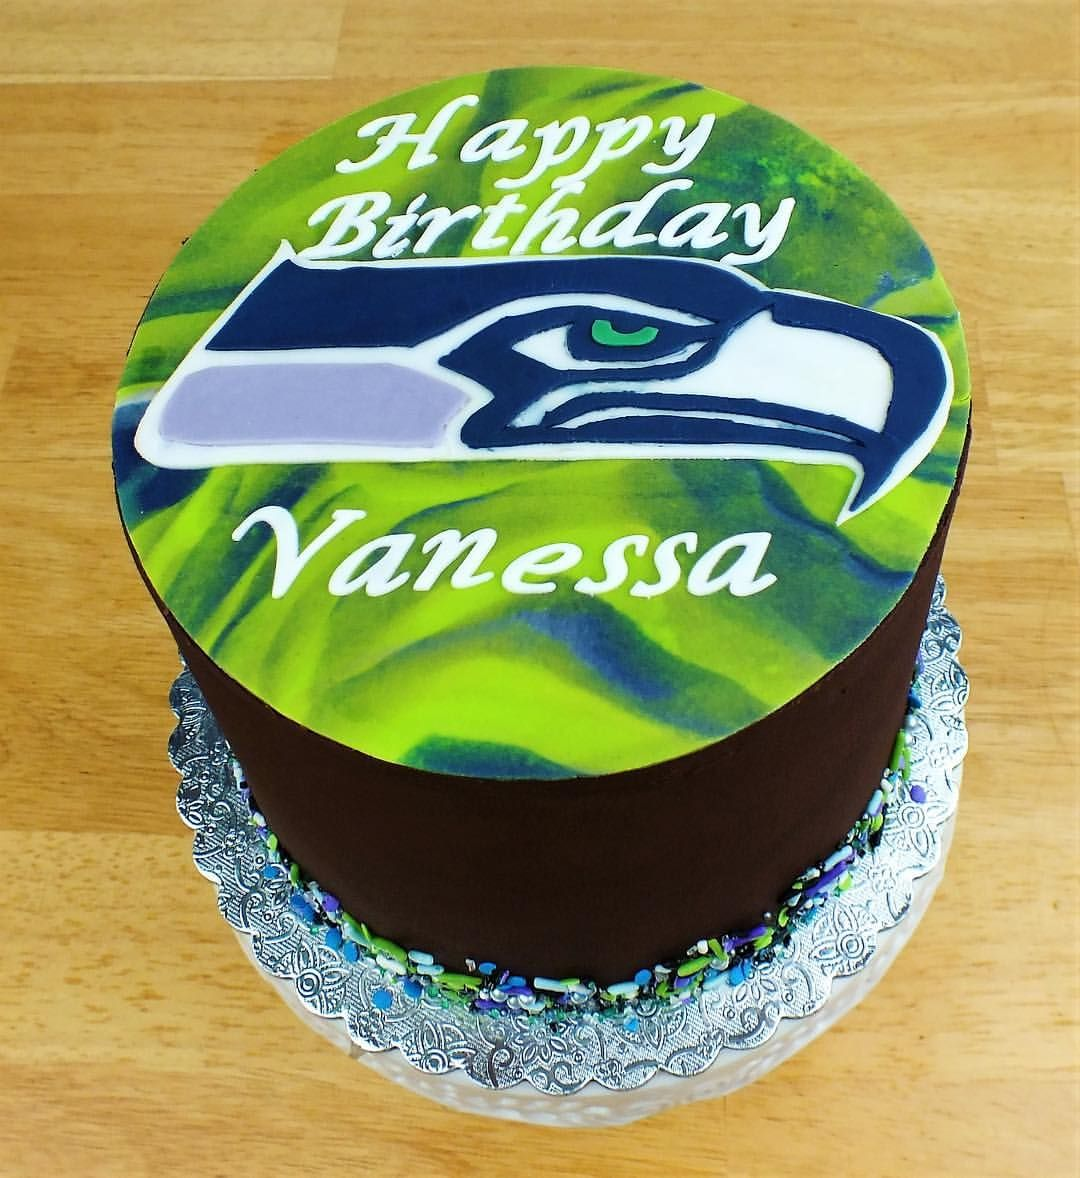 Surprising Seattle Seahawks Cake Seattle Seattleseahawks Cake Football Birthday Cards Printable Opercafe Filternl